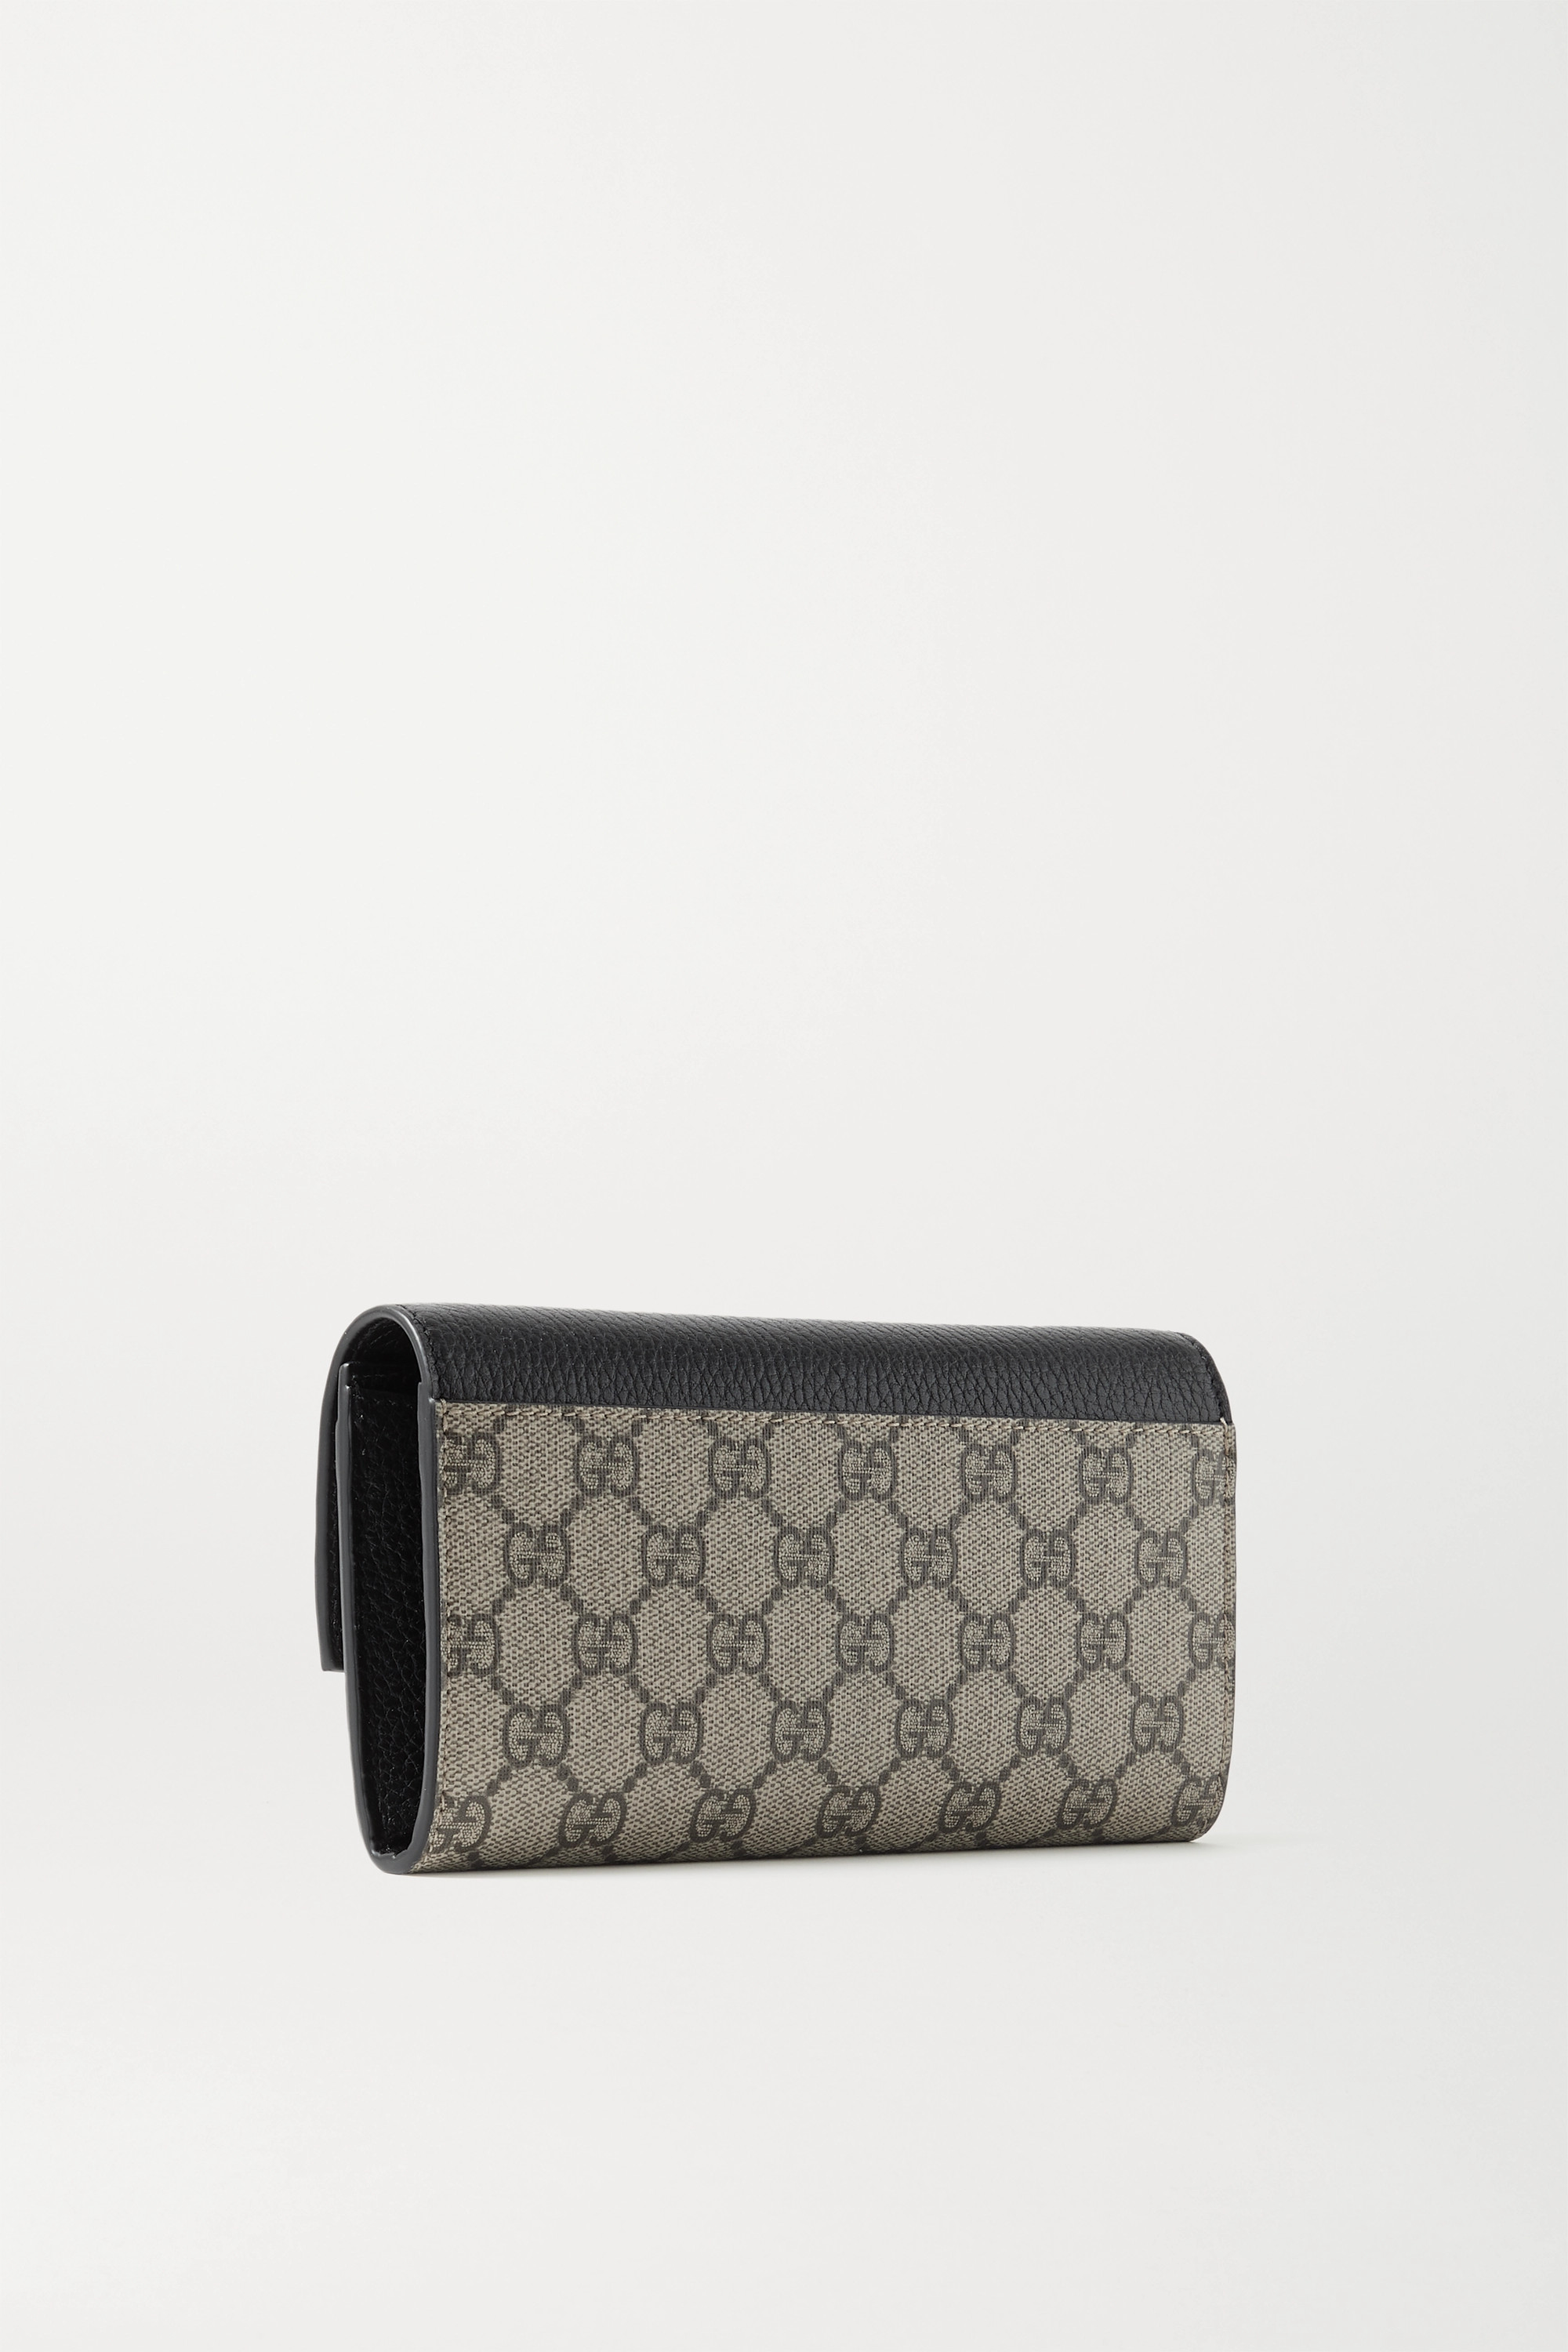 Gucci + NET SUSTAIN GG Marmont Petite textured-leather and printed coated-canvas continental wallet